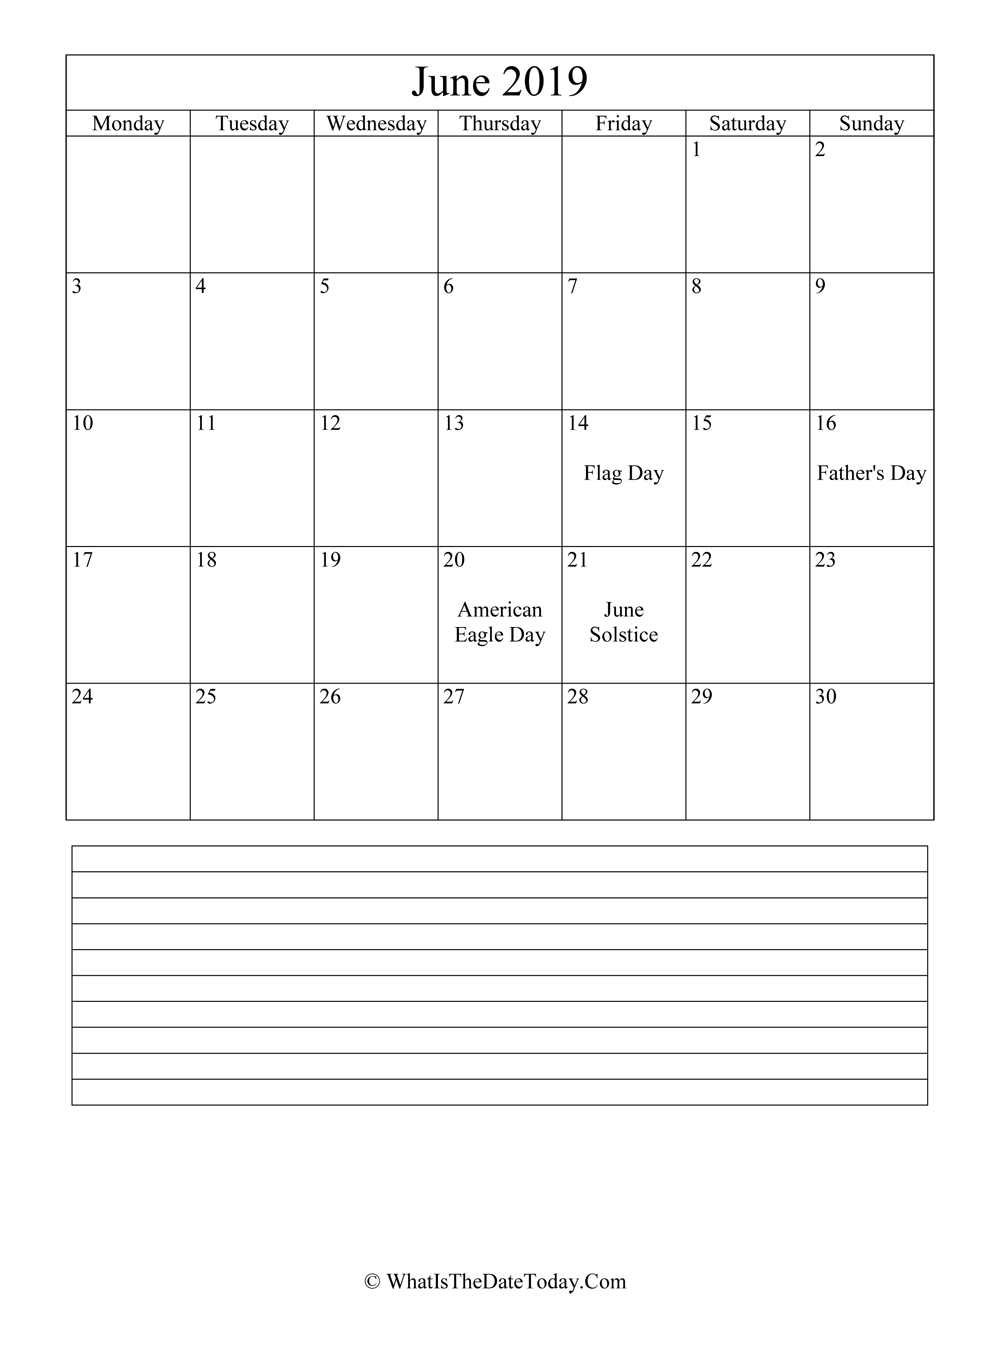 june 2019 calendar editable with notes in vertical layout